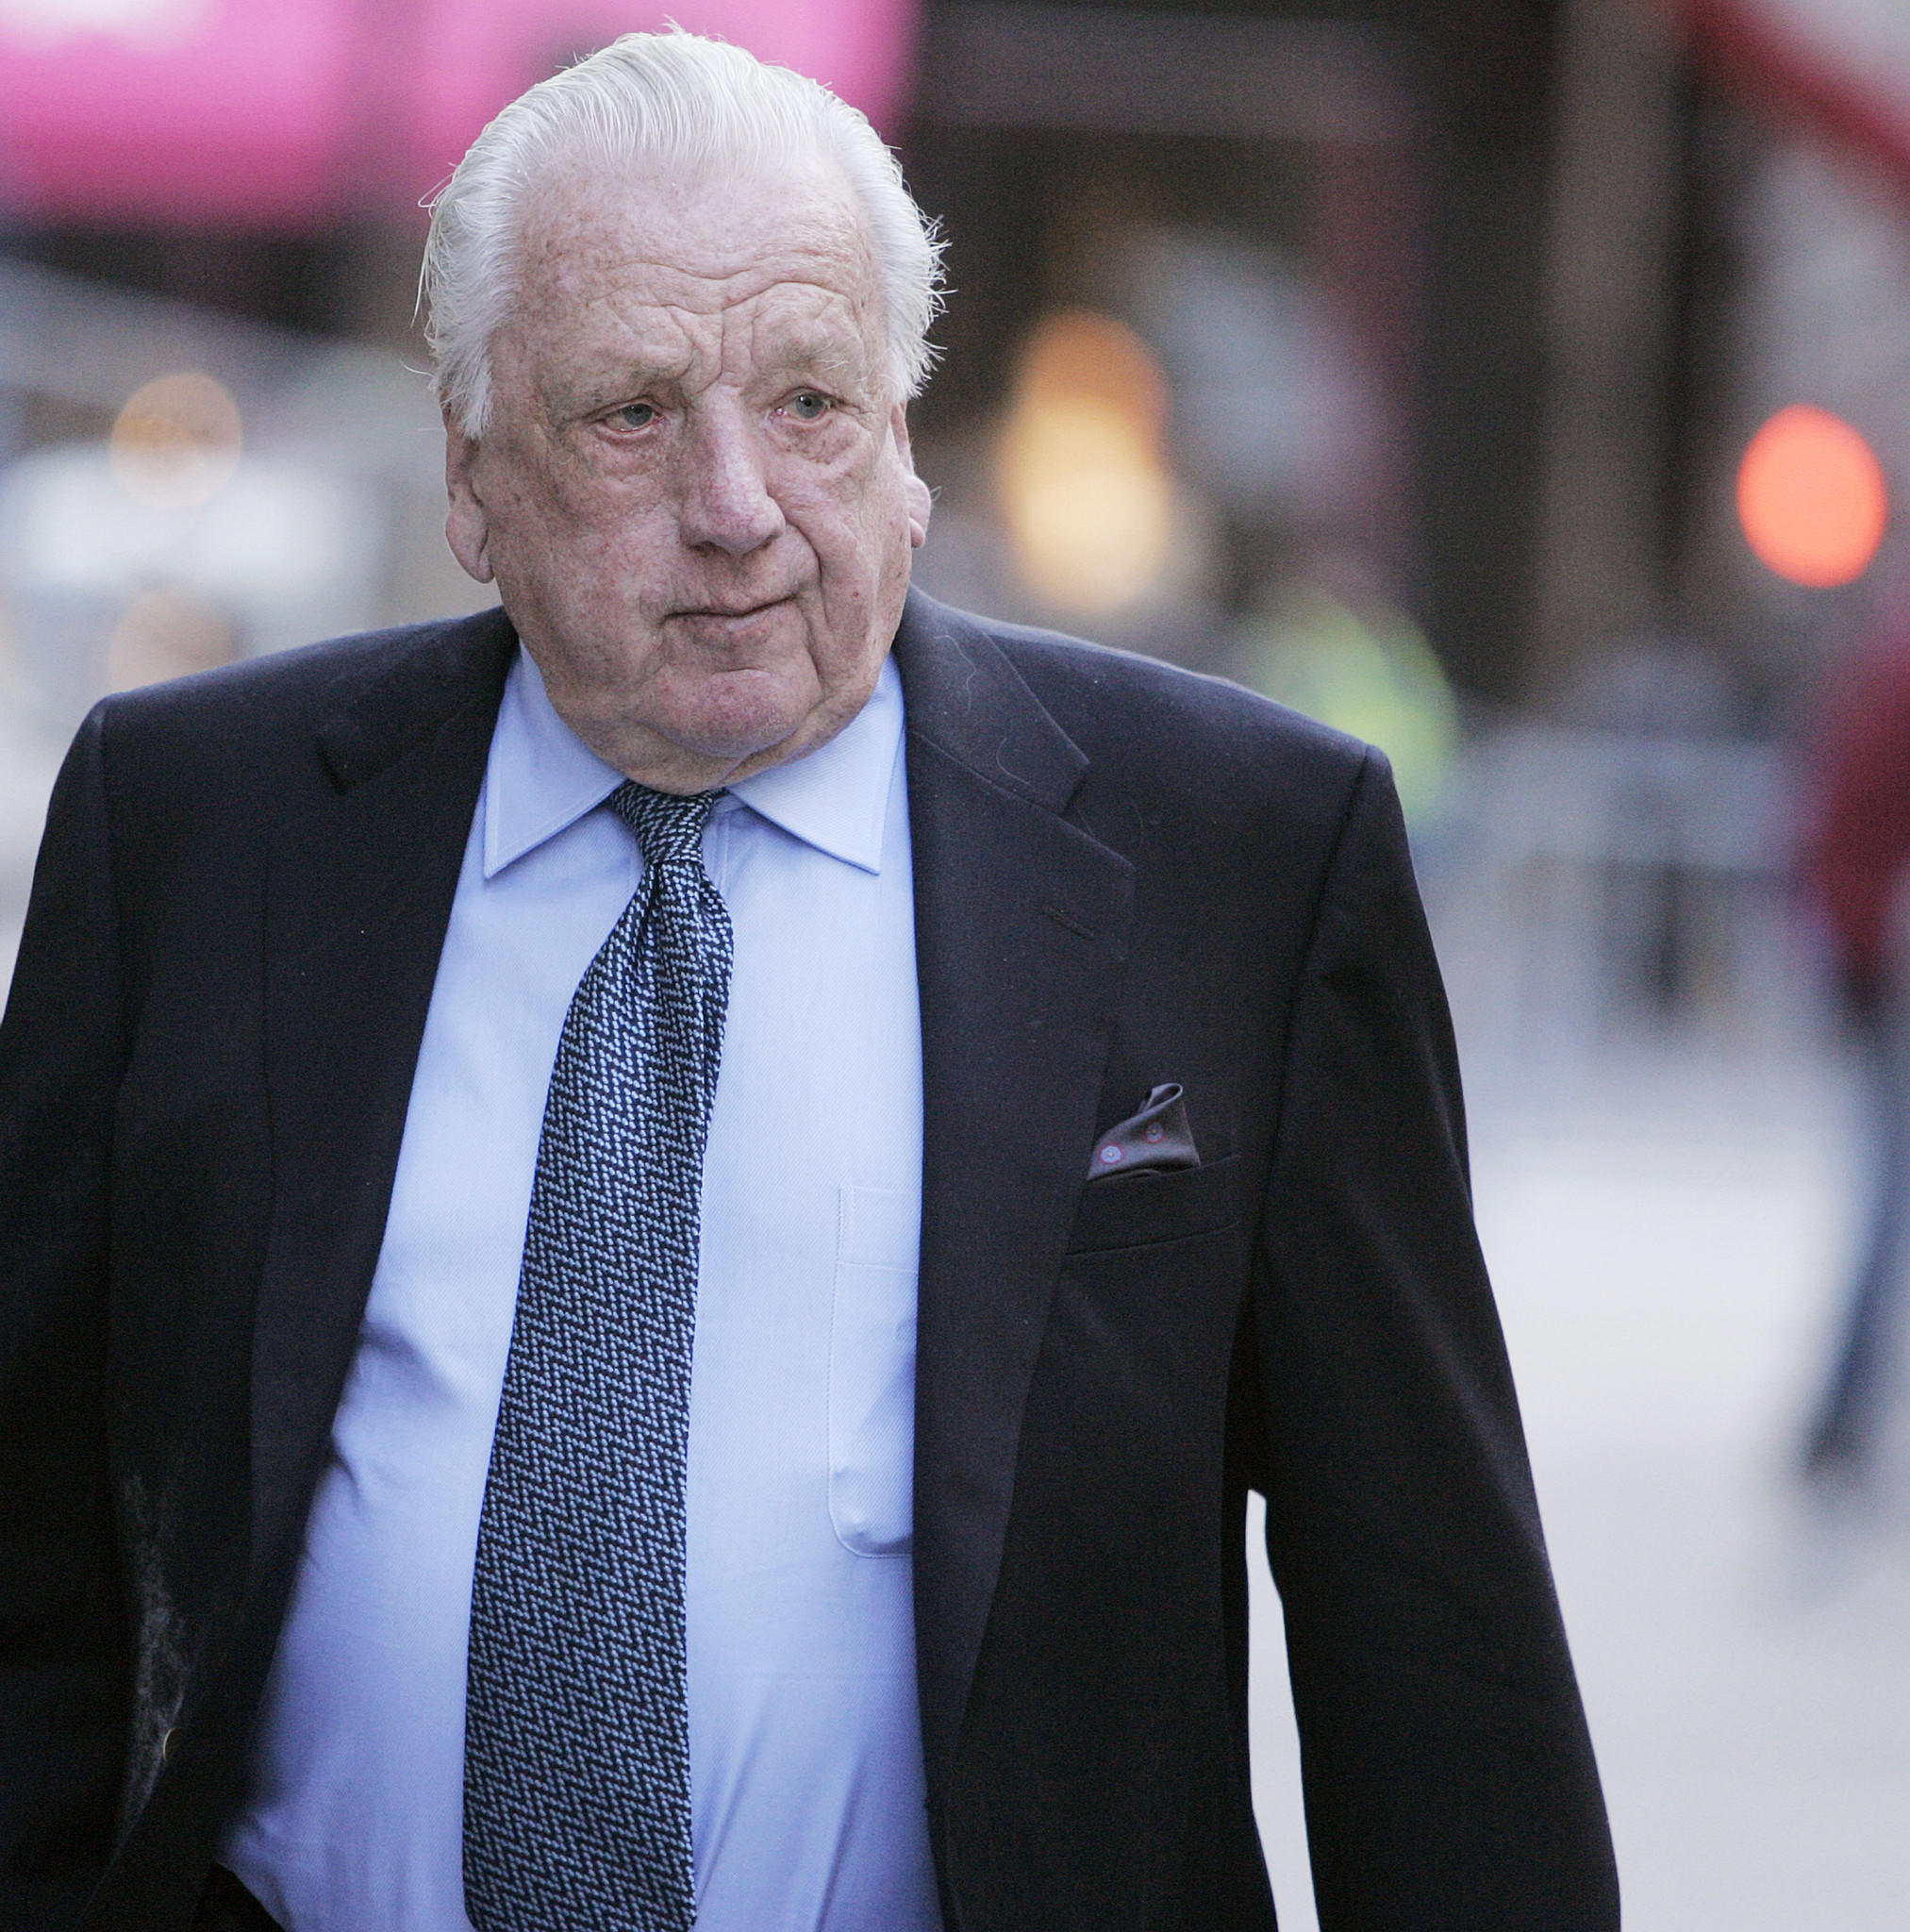 Baseball Hall of Famer Ralph Kiner, pictured in 2005, died Thursday at age 91.